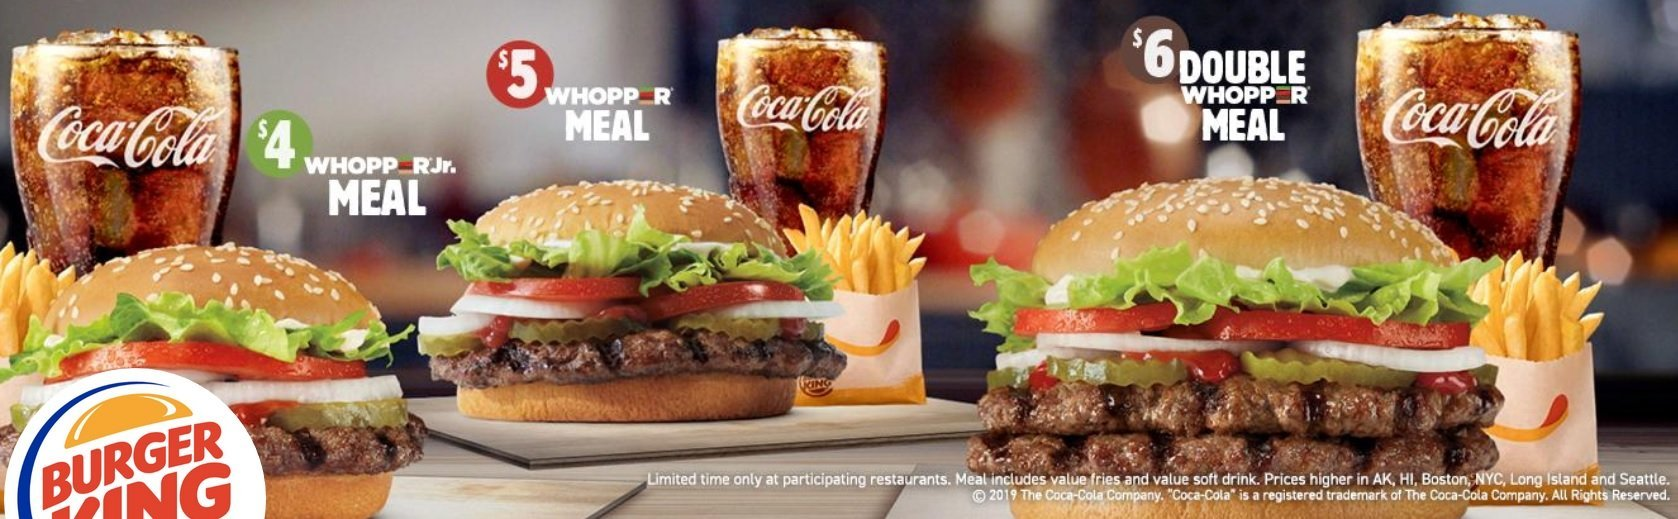 Burger King Launches New $6 Double Whopper Meal, $5 Whopper Meal and